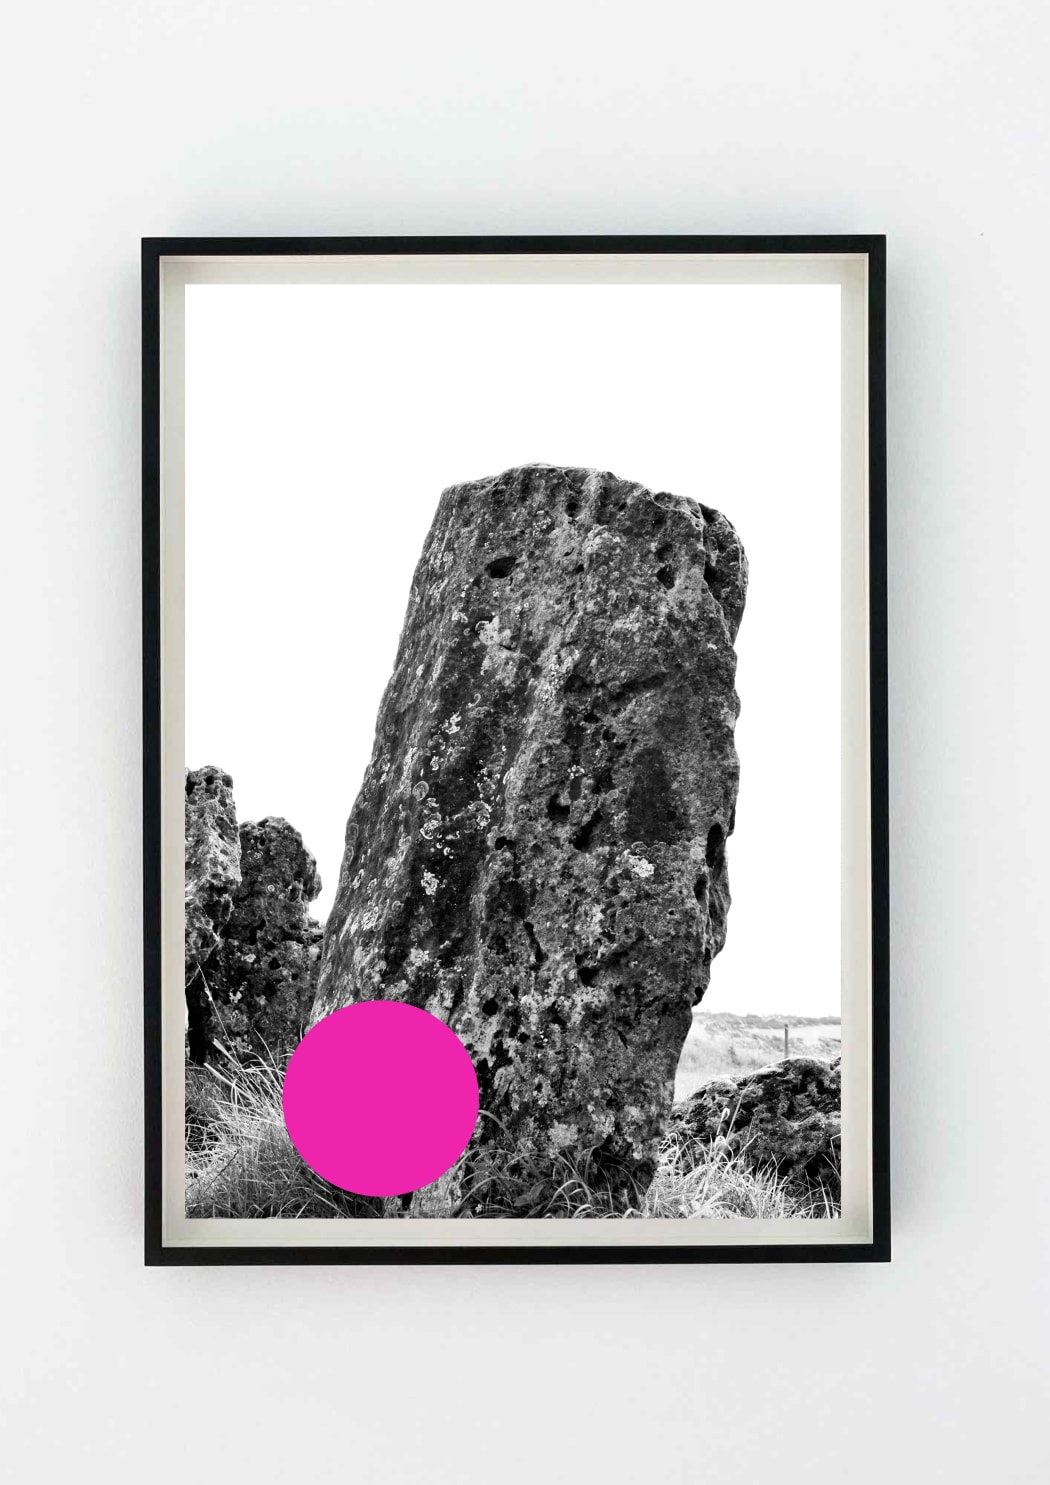 Amy Stephens, A Stone is a Rock Out of Place 'I', 2021 archival pigment print 57 x 40 cm Edition of 10 plus 3 artist's proofs £850